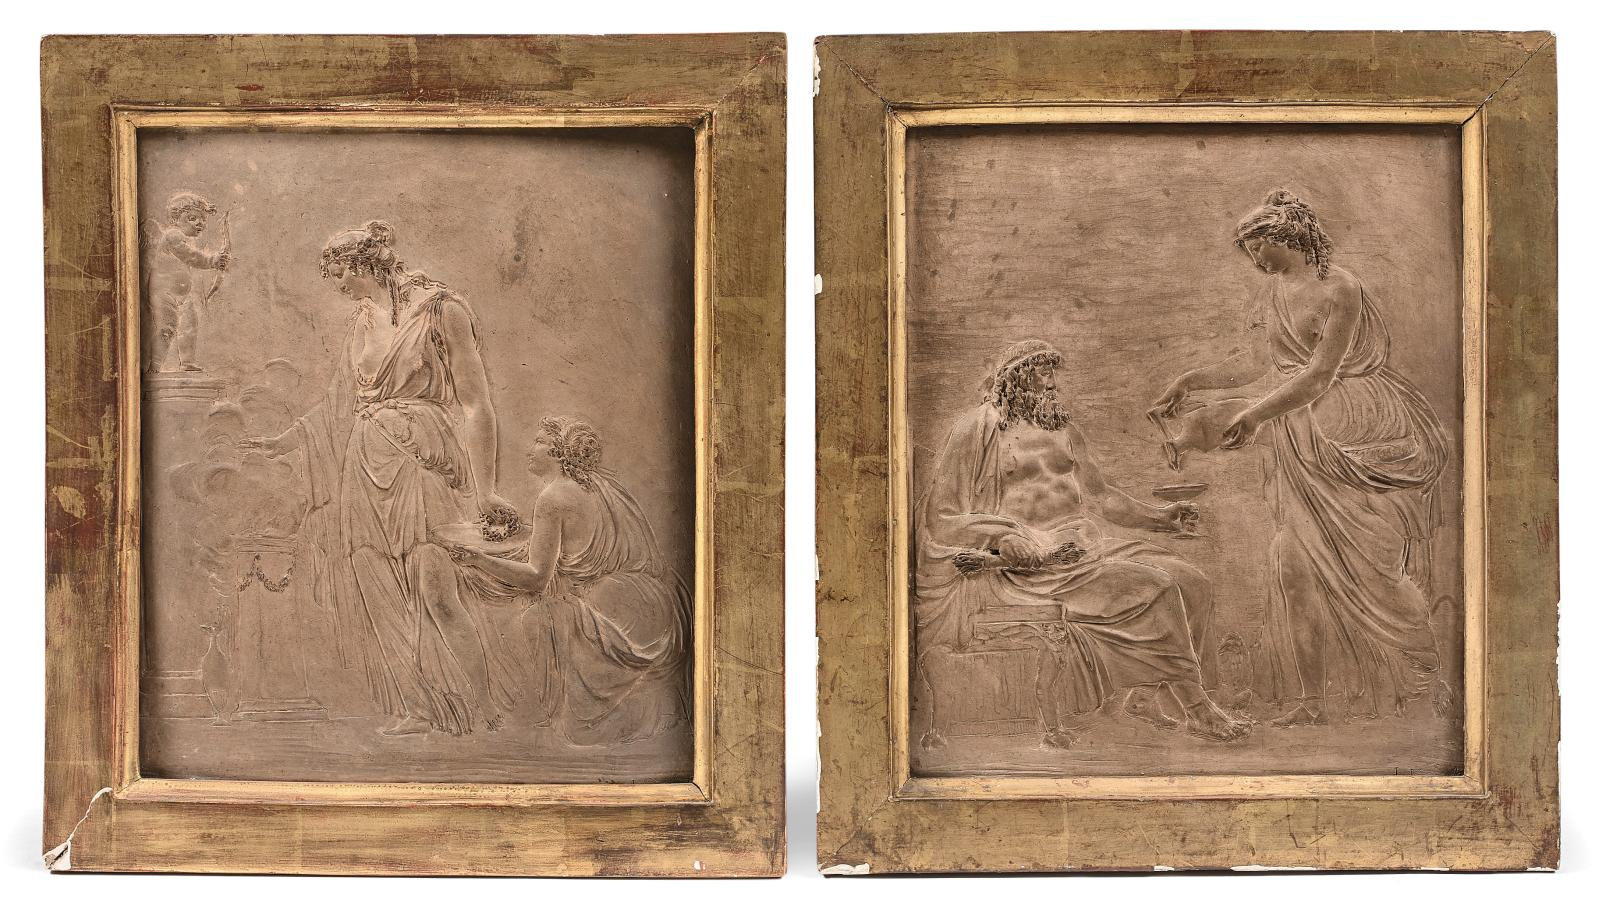 Jean-François Lorta (1752-1837), Offrande à l'Amour (Love Offering) and Offrande à Bacchus (Offering to Bacchus), pair of terra cotta bas-reliefs, 179